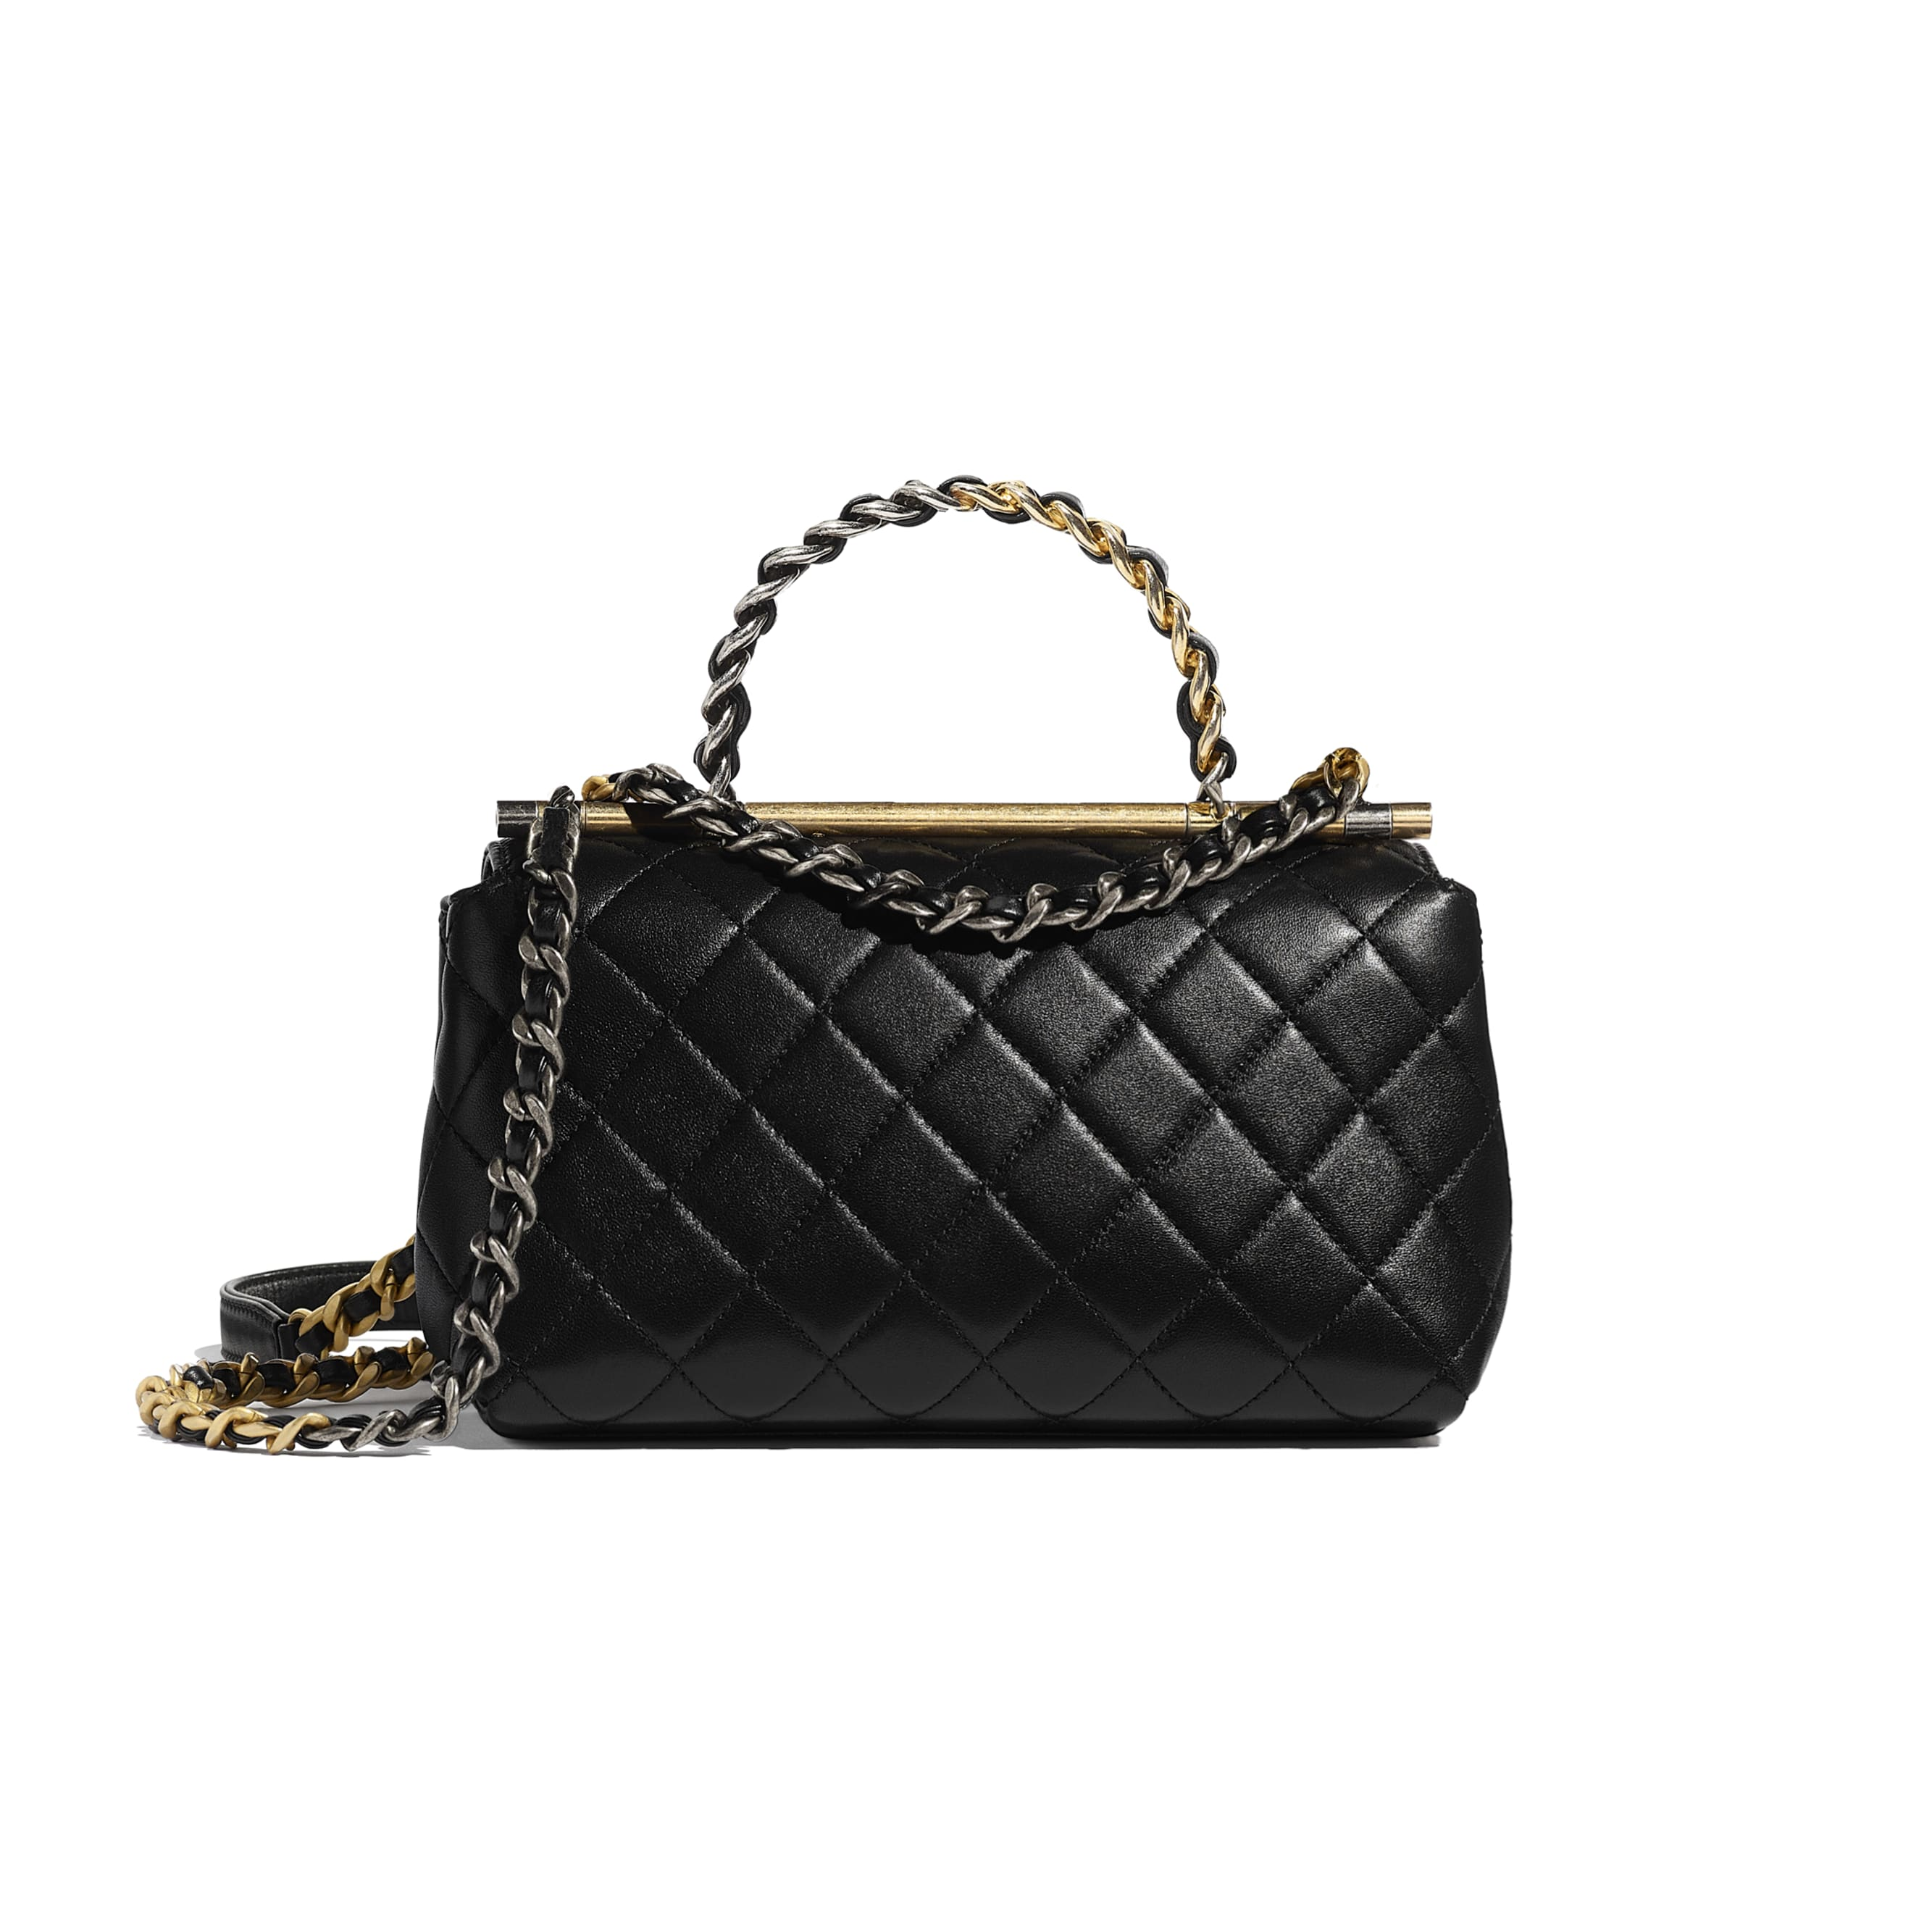 Small Flap Bag with Top Handle - Black - Lambskin, Gold-Tone & Ruthenium-Finish Metal - CHANEL - Alternative view - see standard sized version